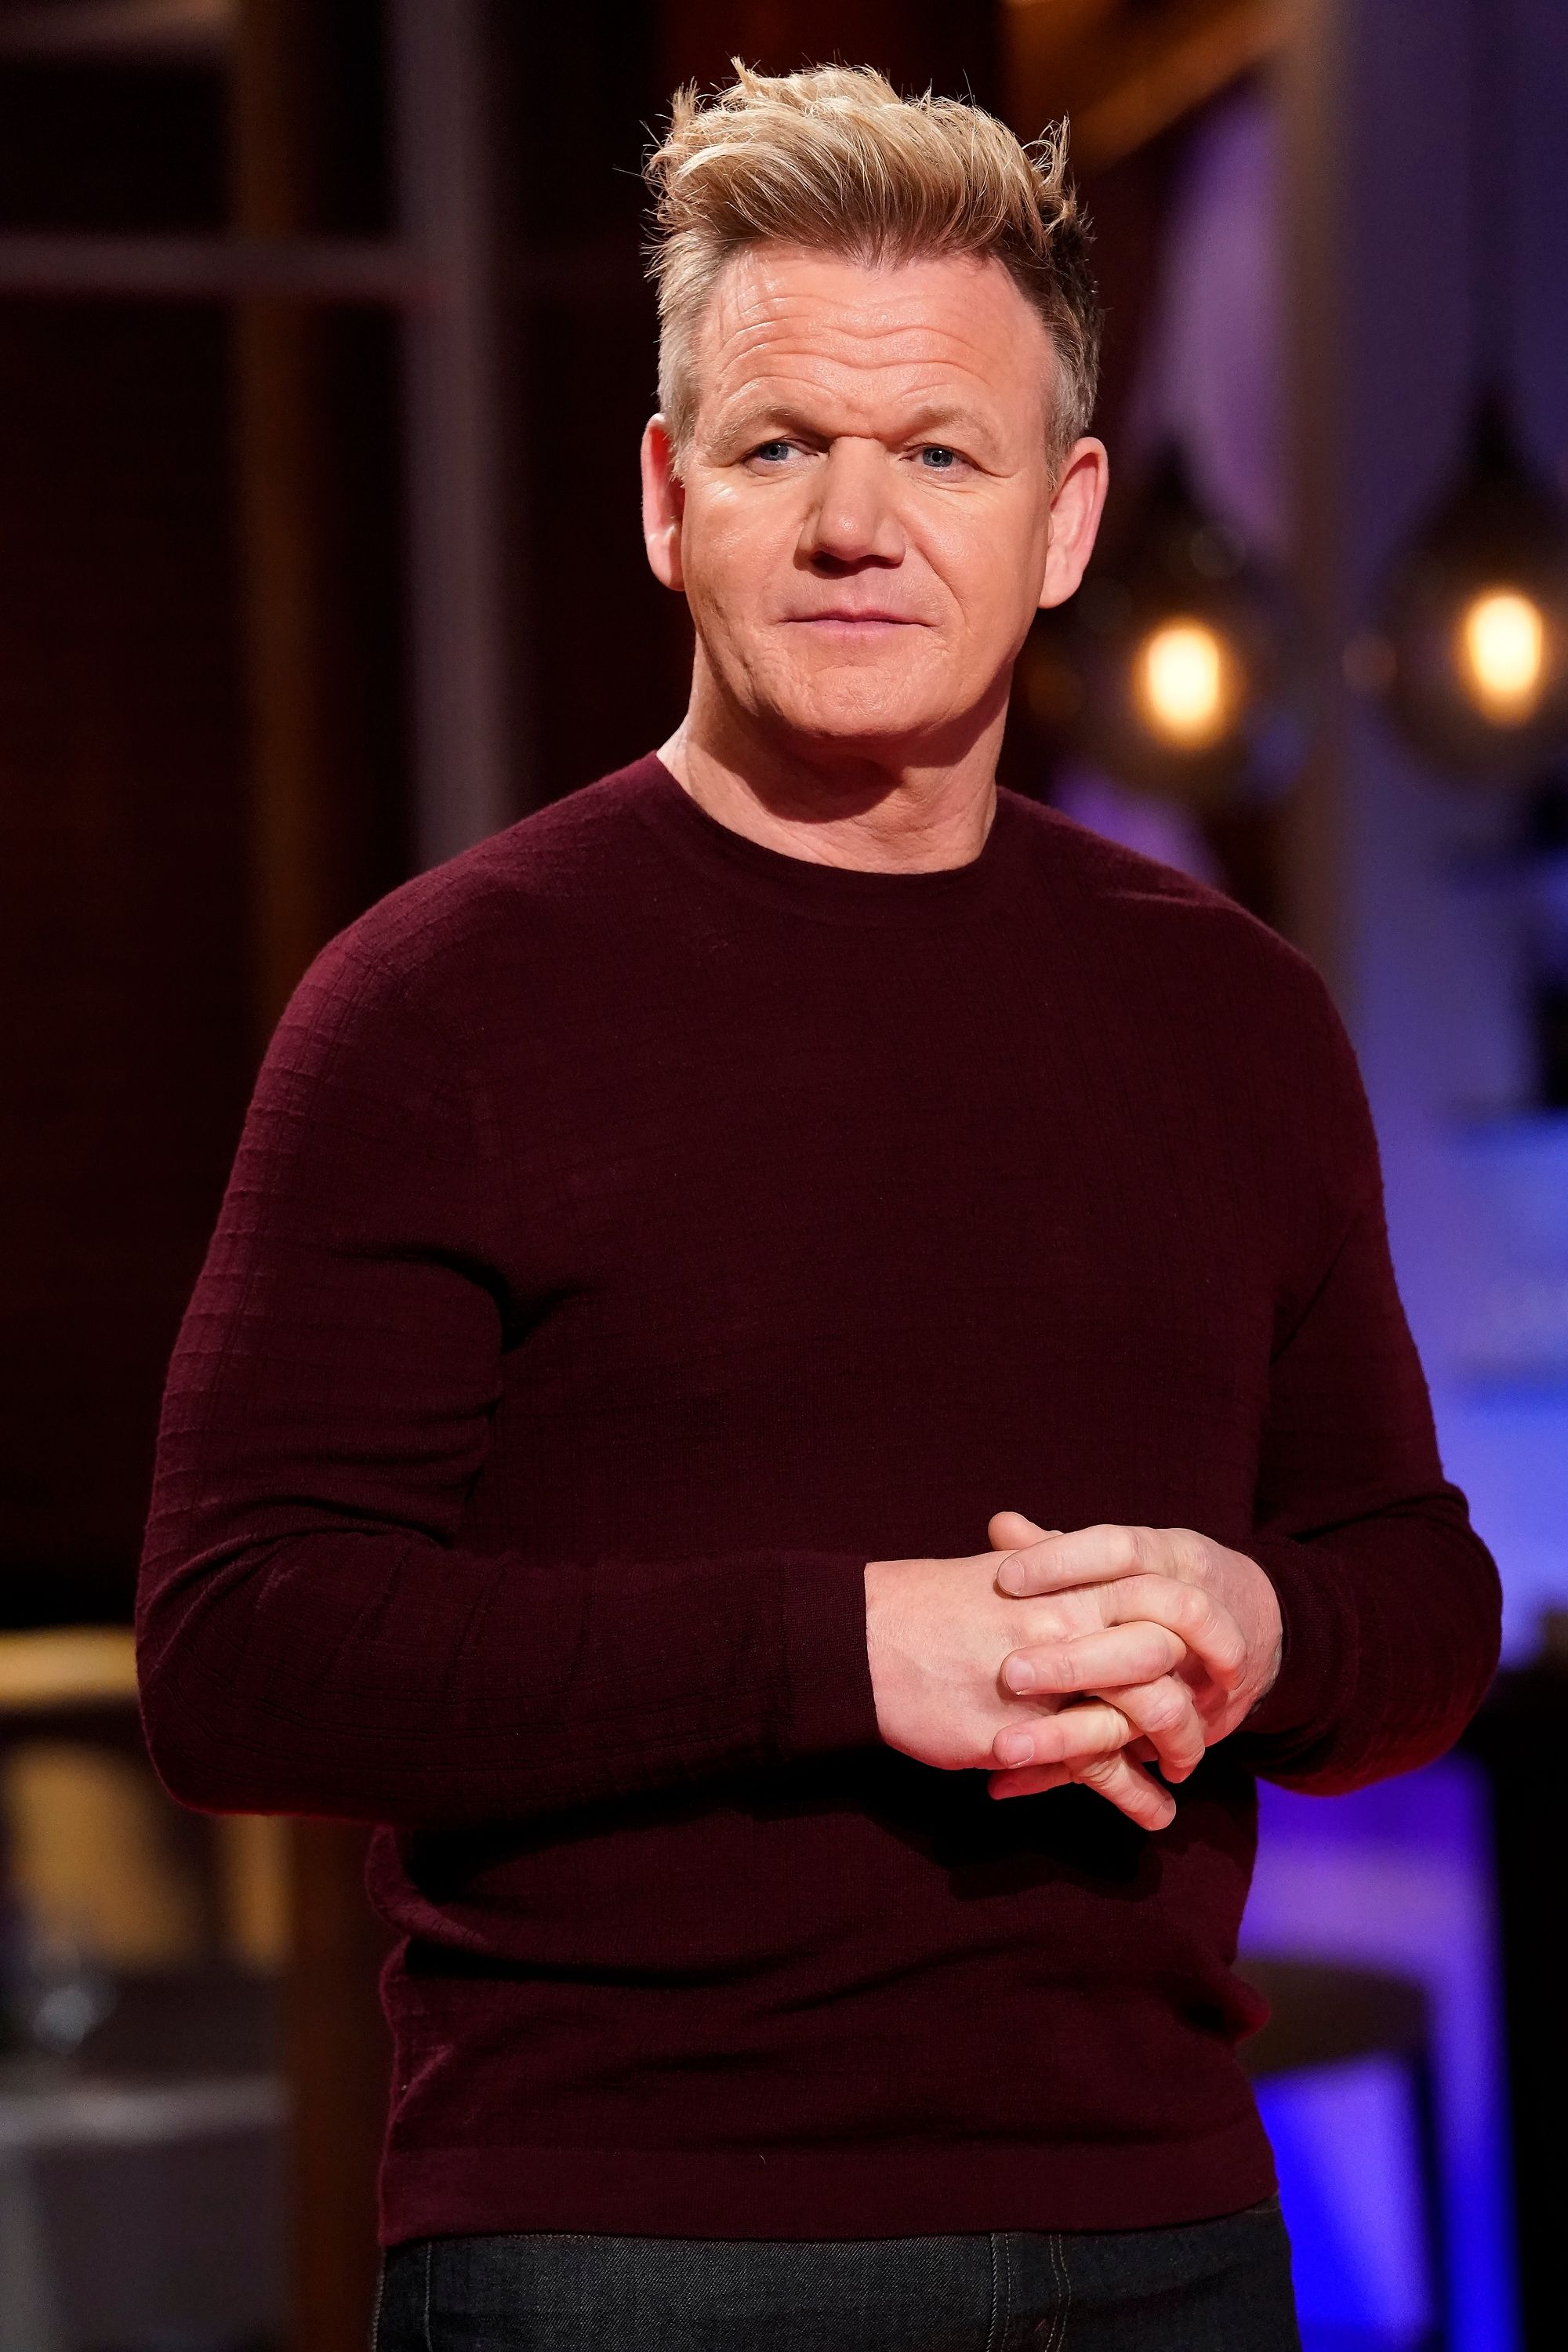 Gordon Ramsay's New Show 'Uncharted' Is So Different Than All His Others